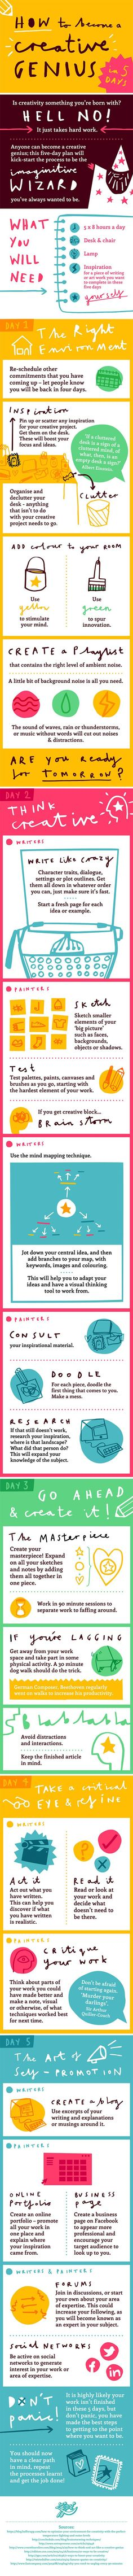 How to Become a Creative Genius in 5 Days #Infographic